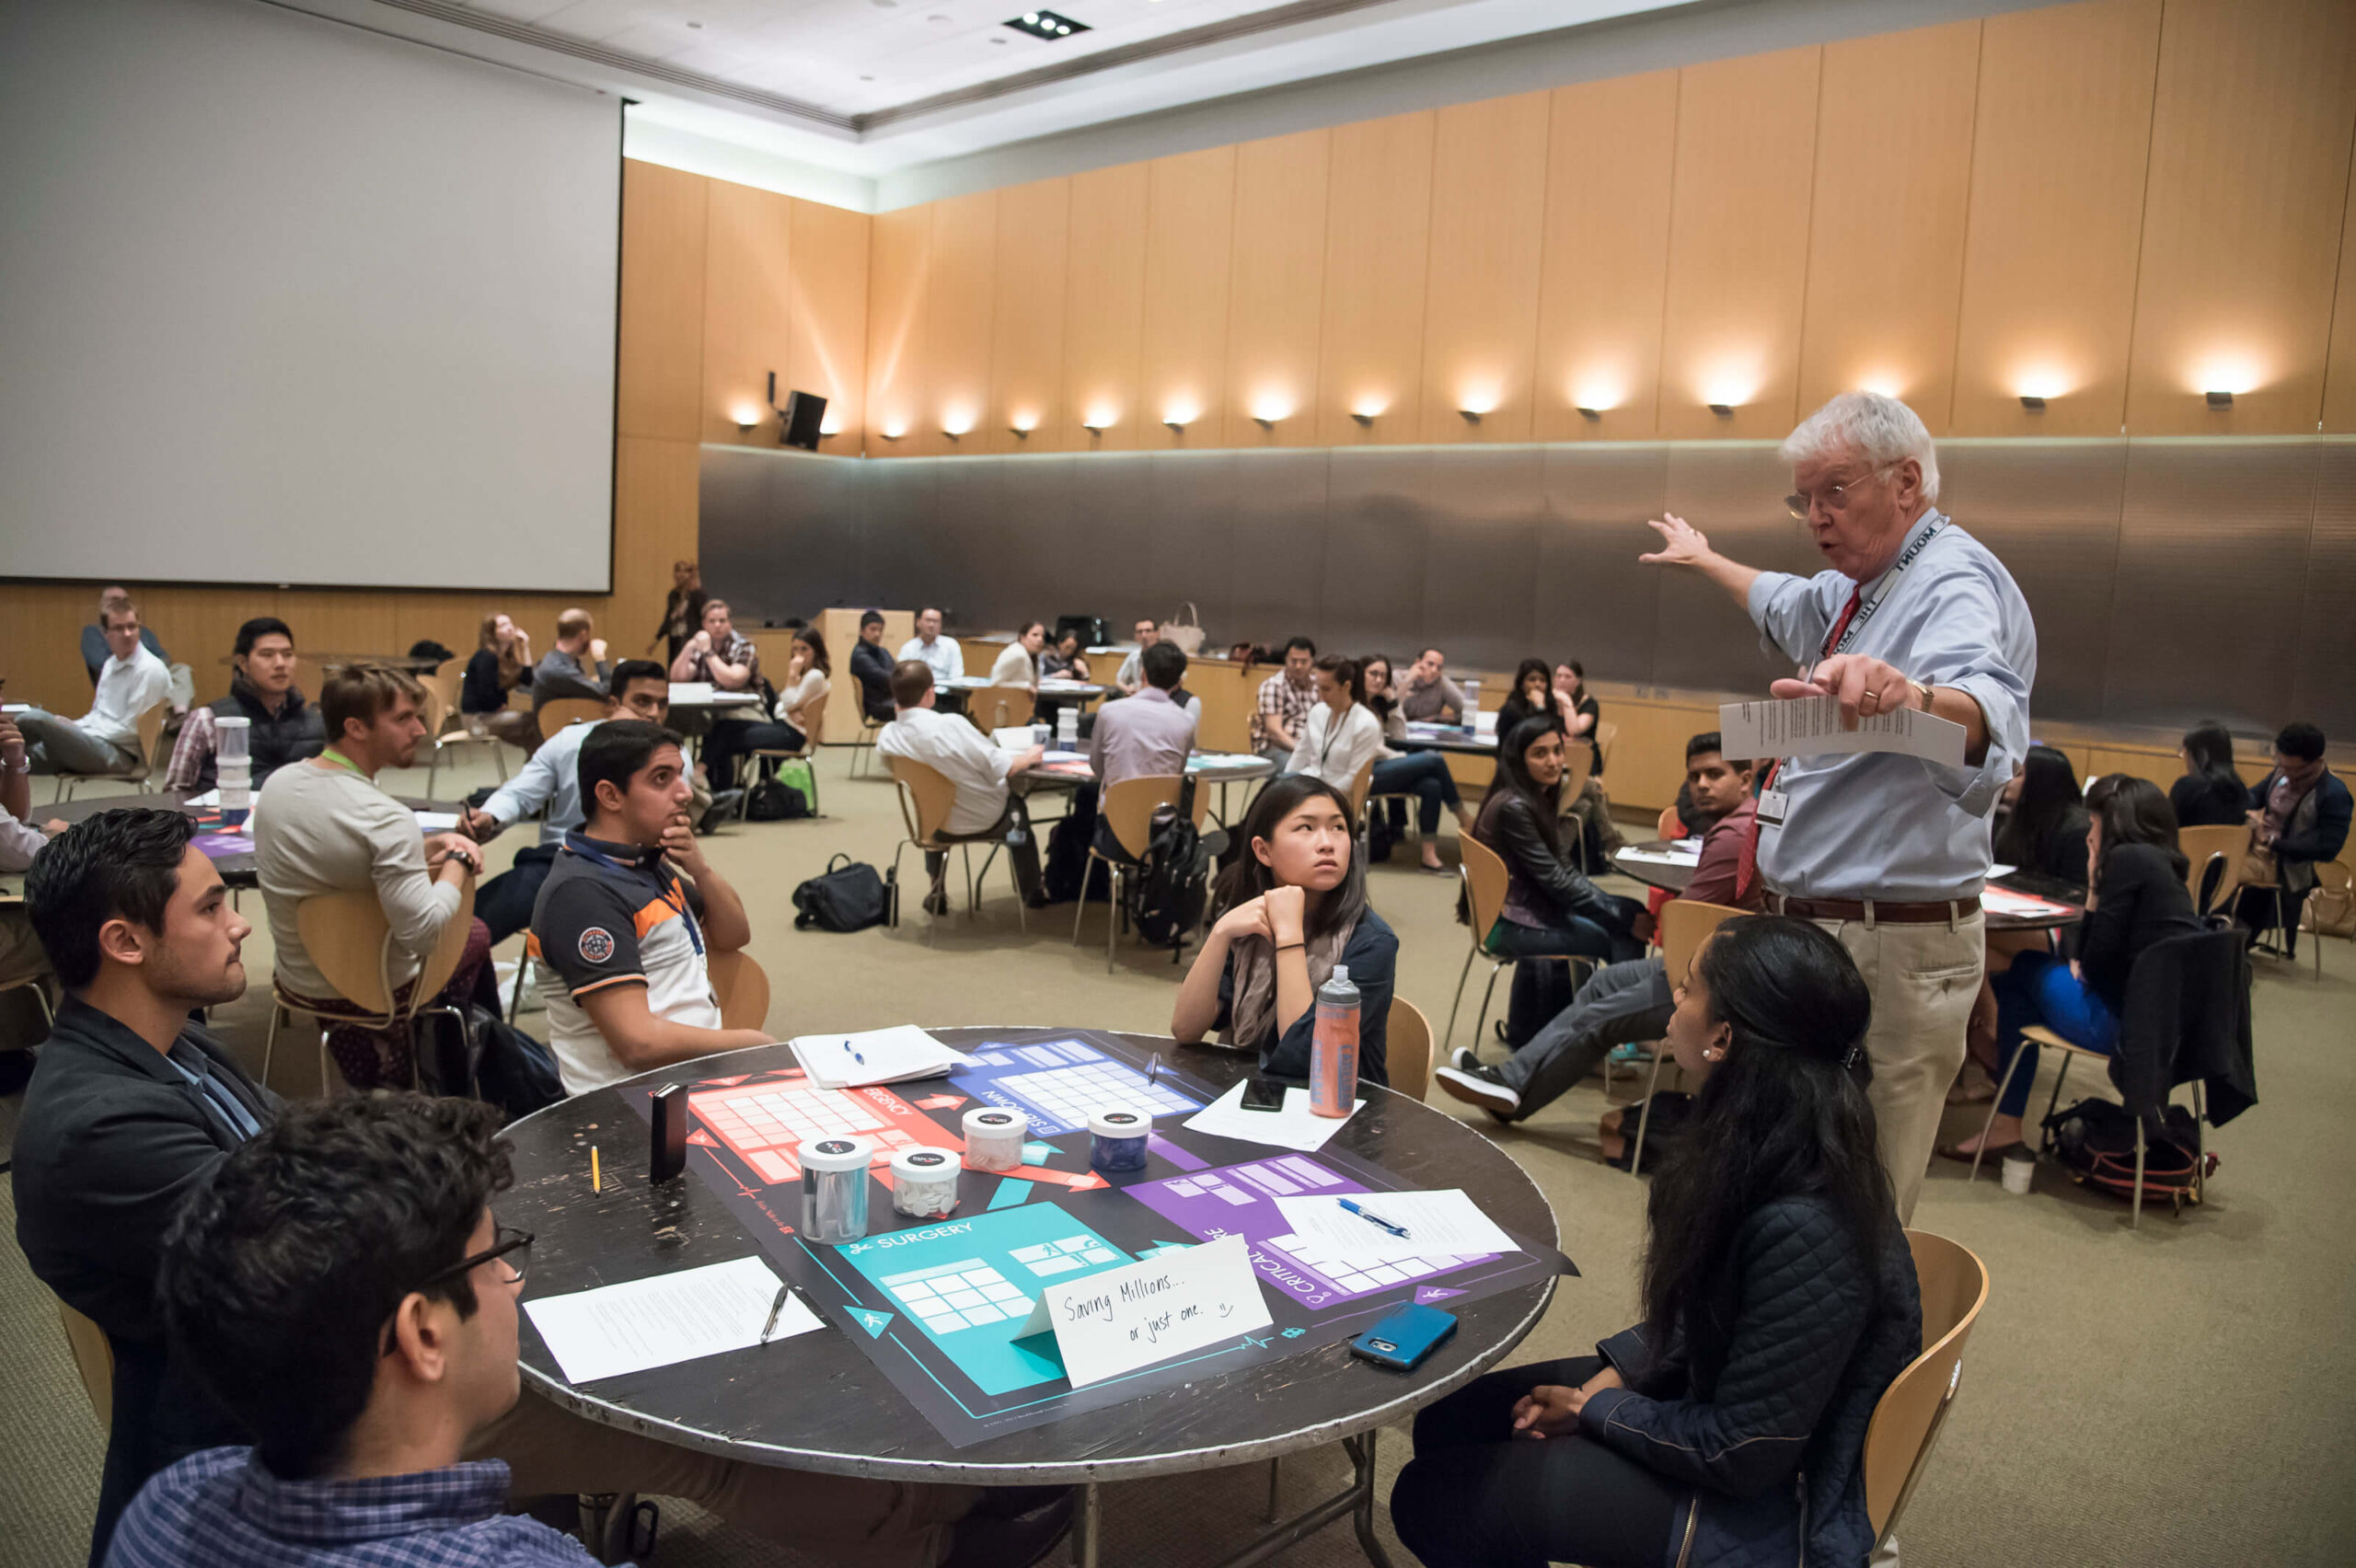 William Ward, Associate Professor from the Johns Hopkins University Bloomberg School of Public Health leads a student discussion following a round of game play of Friday Night at the ER